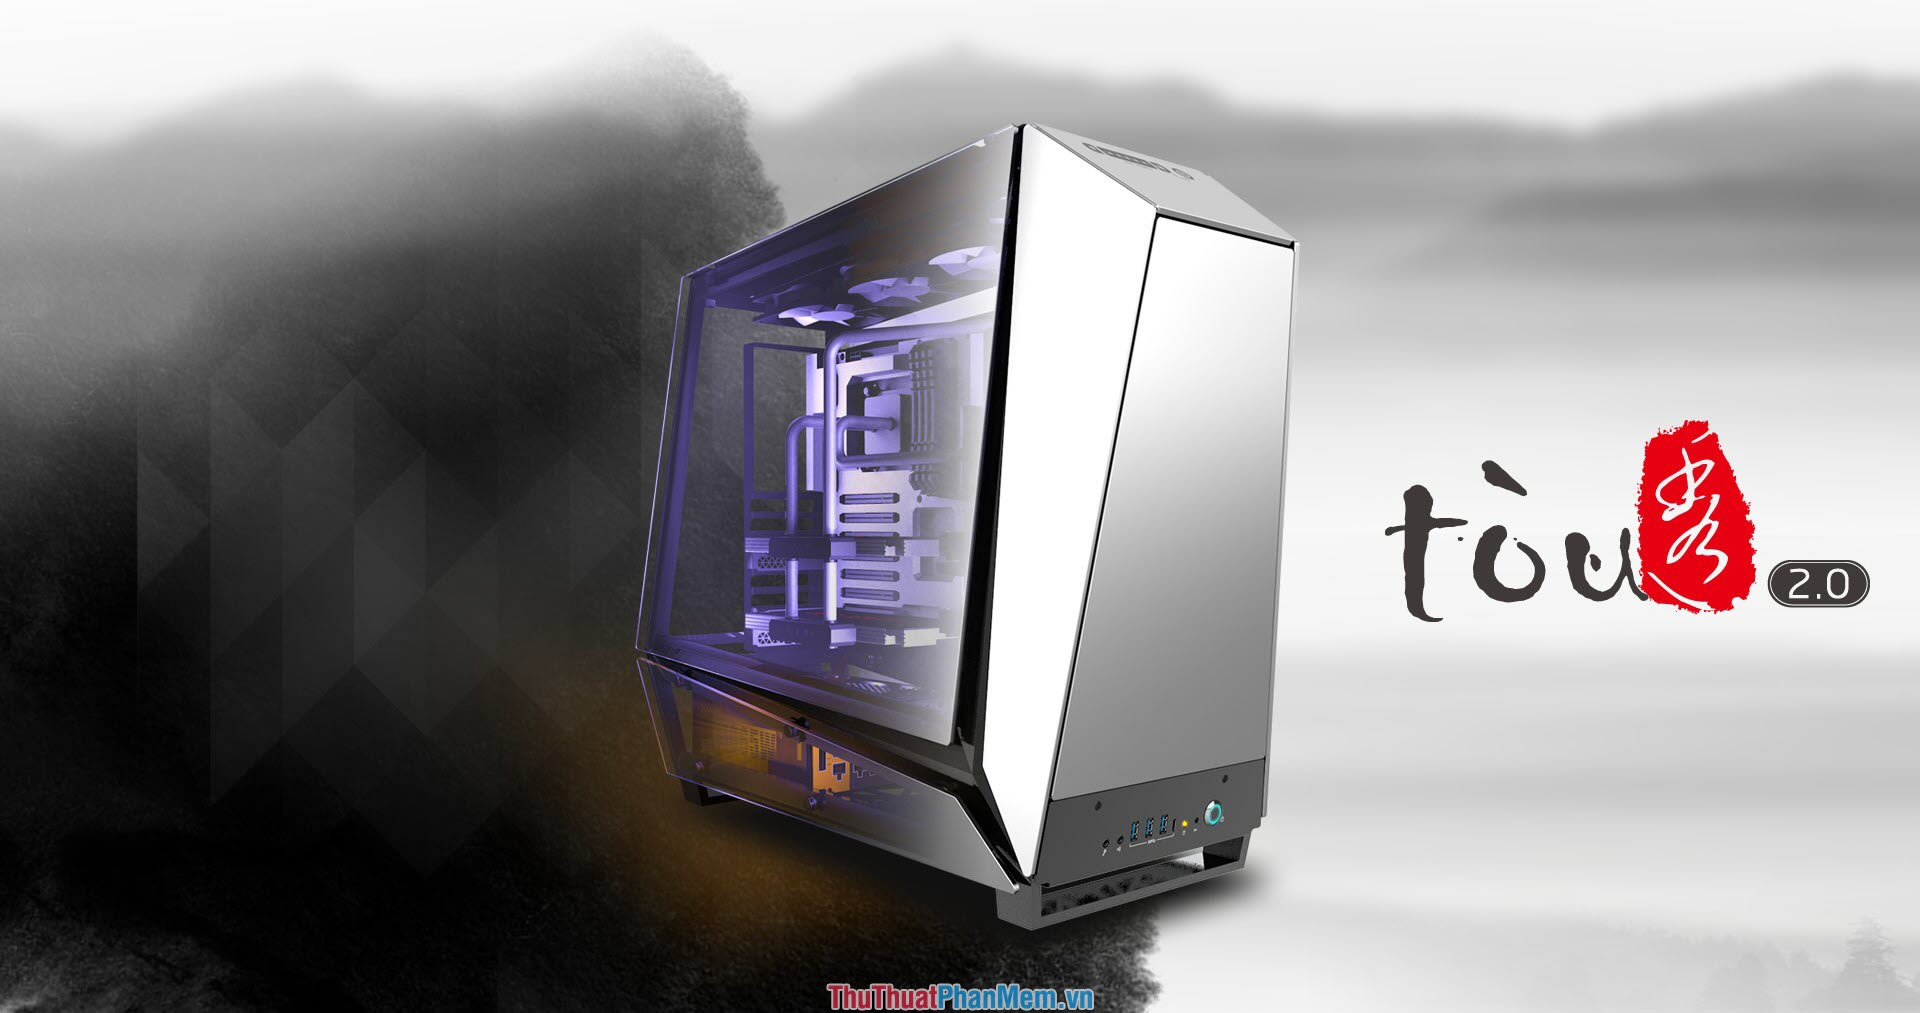 In-Win Tòu 2.0 Limited Edition